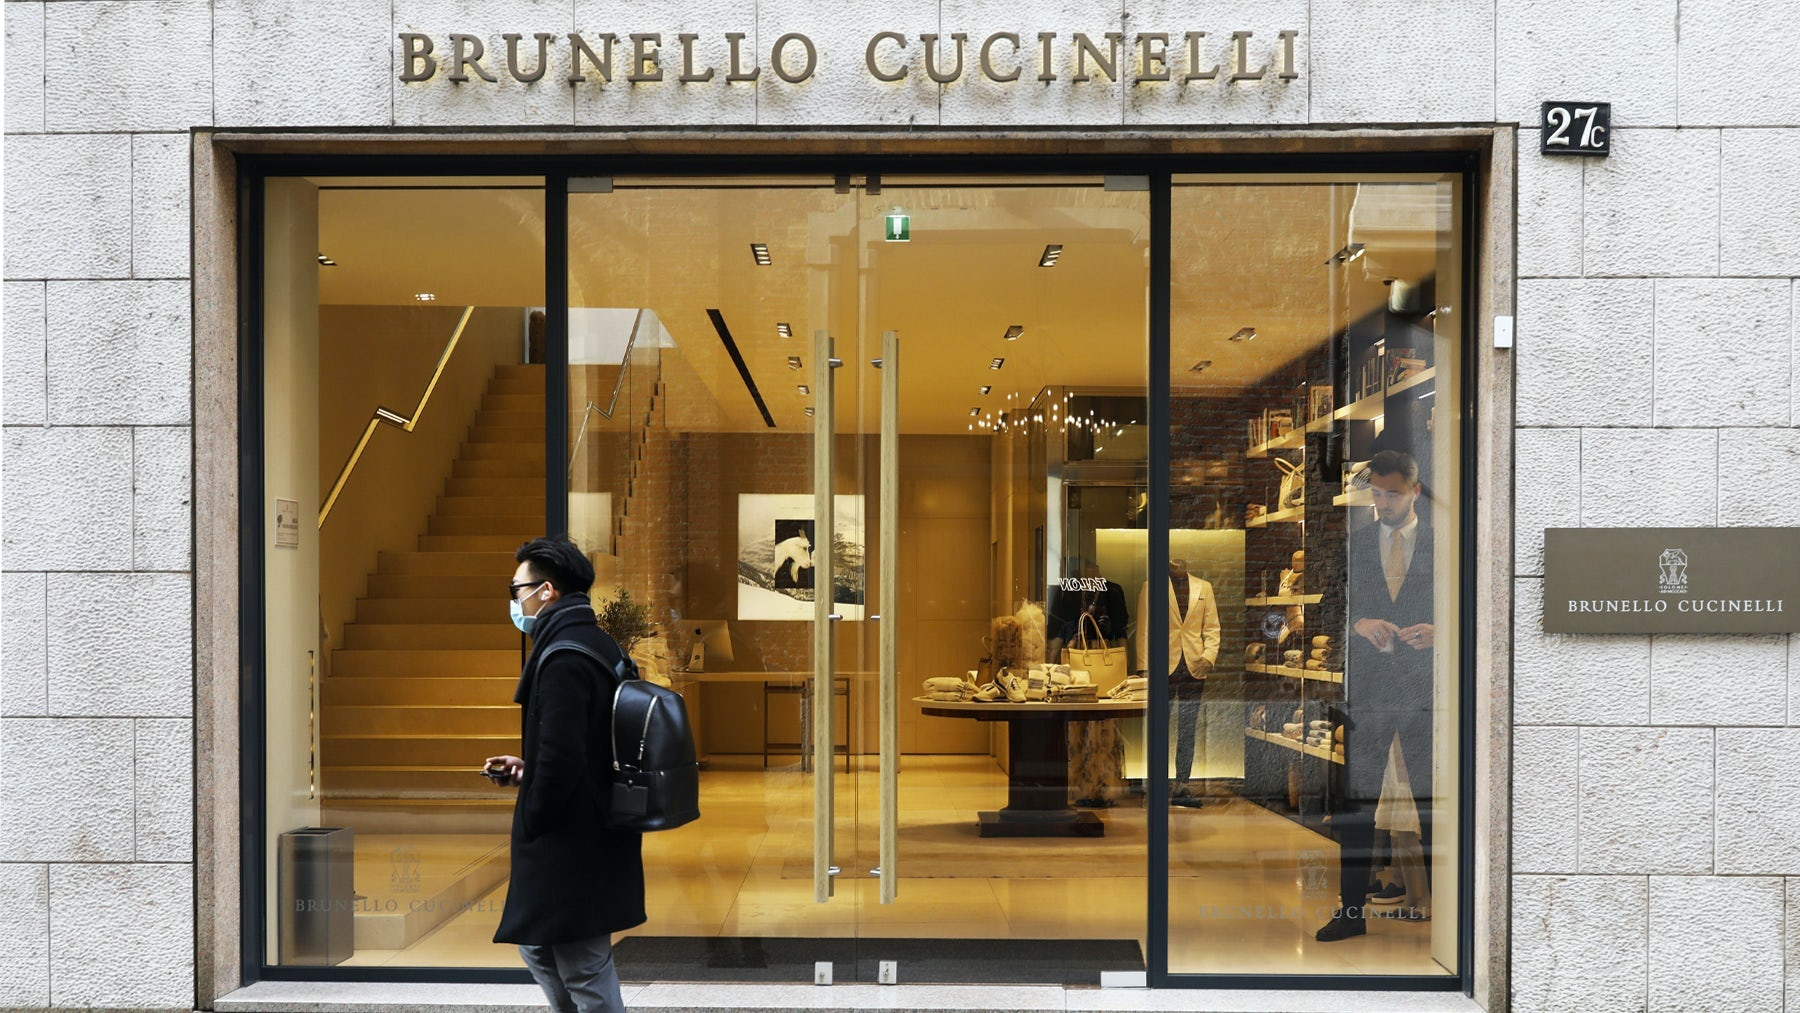 A man wears a protective mask as he walks in front of the Brunello Cucinelli store on via Montenapoleone in Milan. Getty Images.